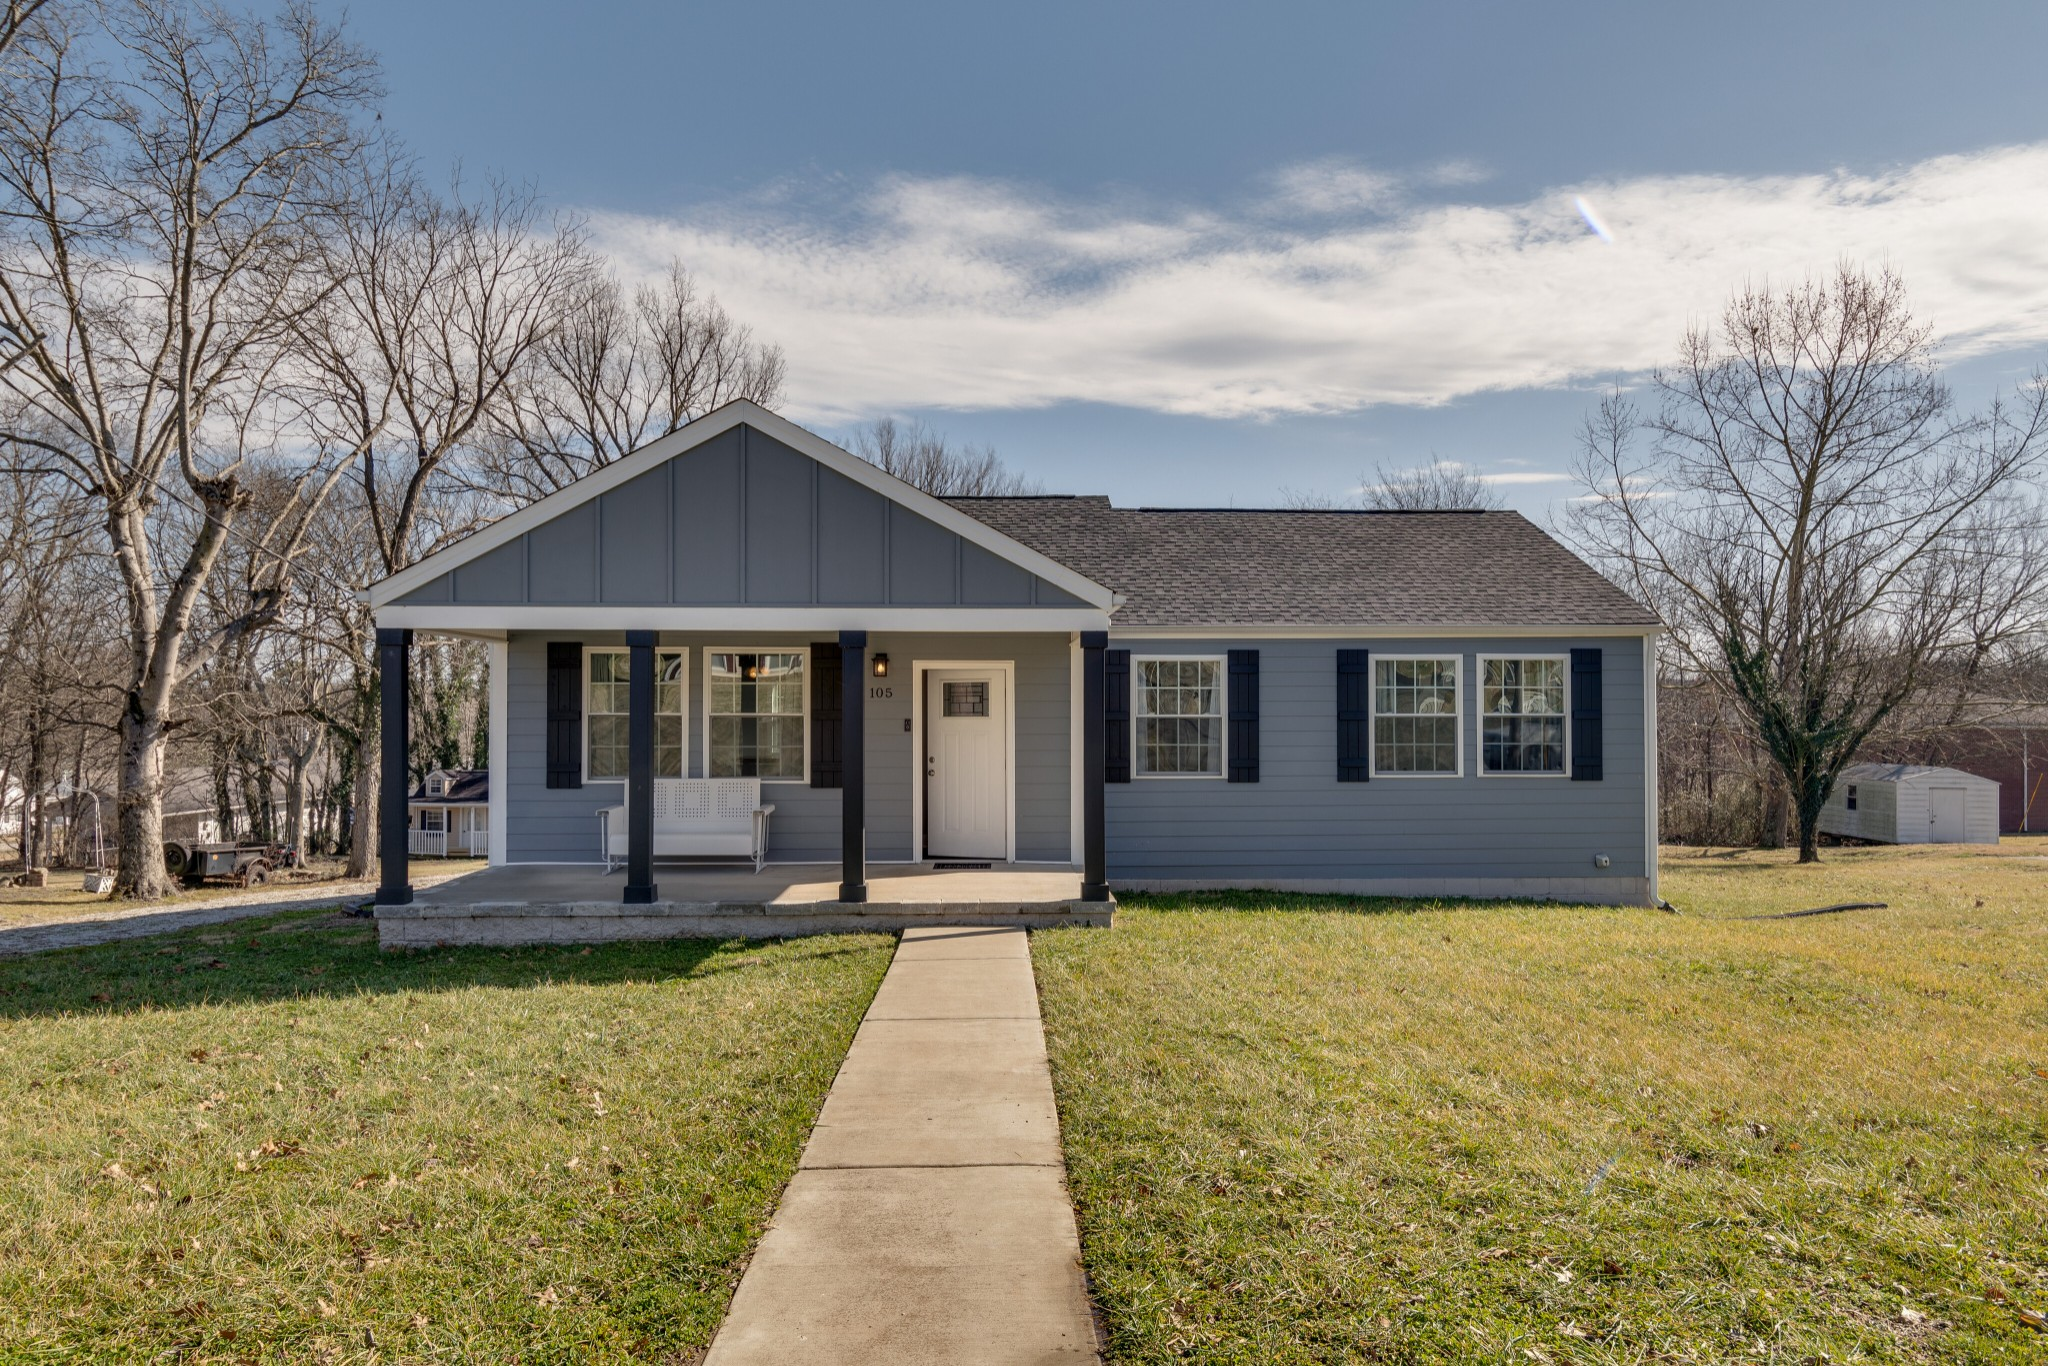 105 N College St Property Photo - Mount Pleasant, TN real estate listing